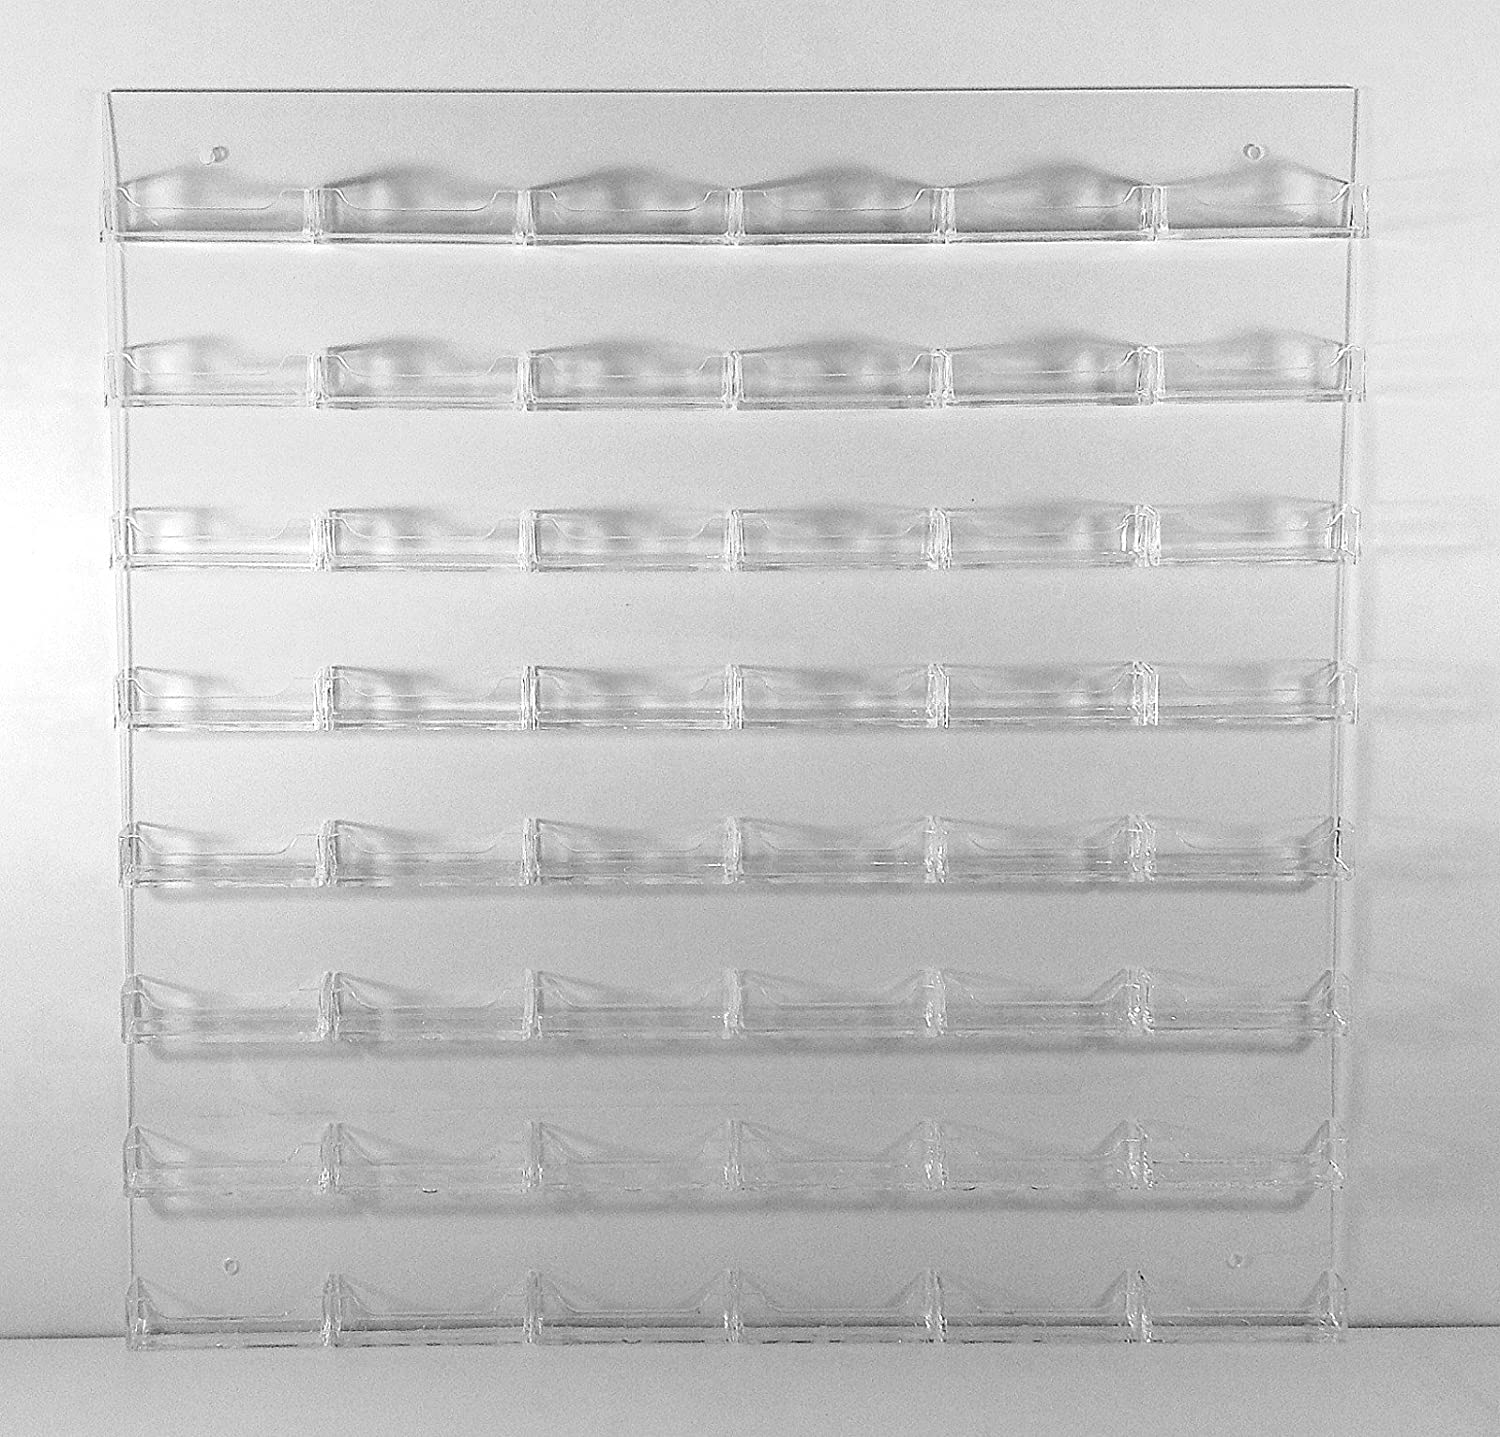 Amazon.com : Dazzling Displays Clear Acrylic 48-Pocket Wall-Mount ...